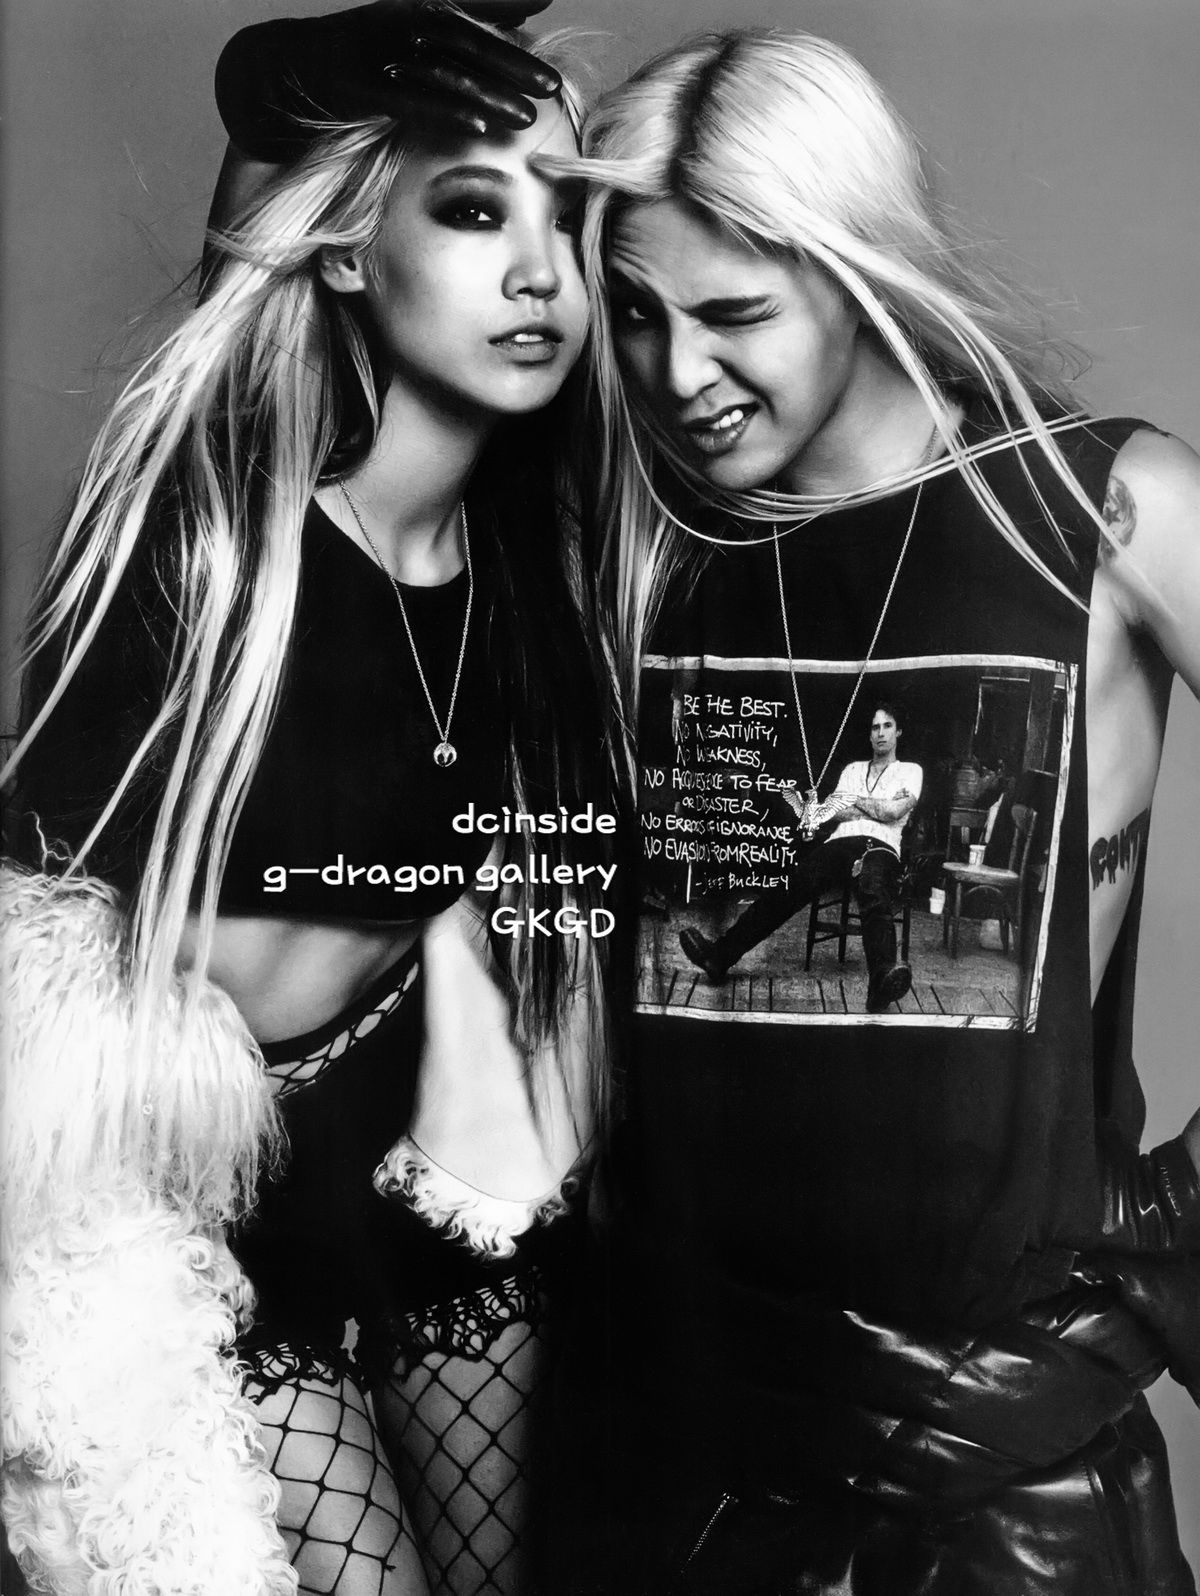 #Black #Twins G-Dragon's pictorial with Korean models Park Soojoo, Kim Sunghee and Park Jihye for Vogue Korea's 17th Anniversary Special Issue